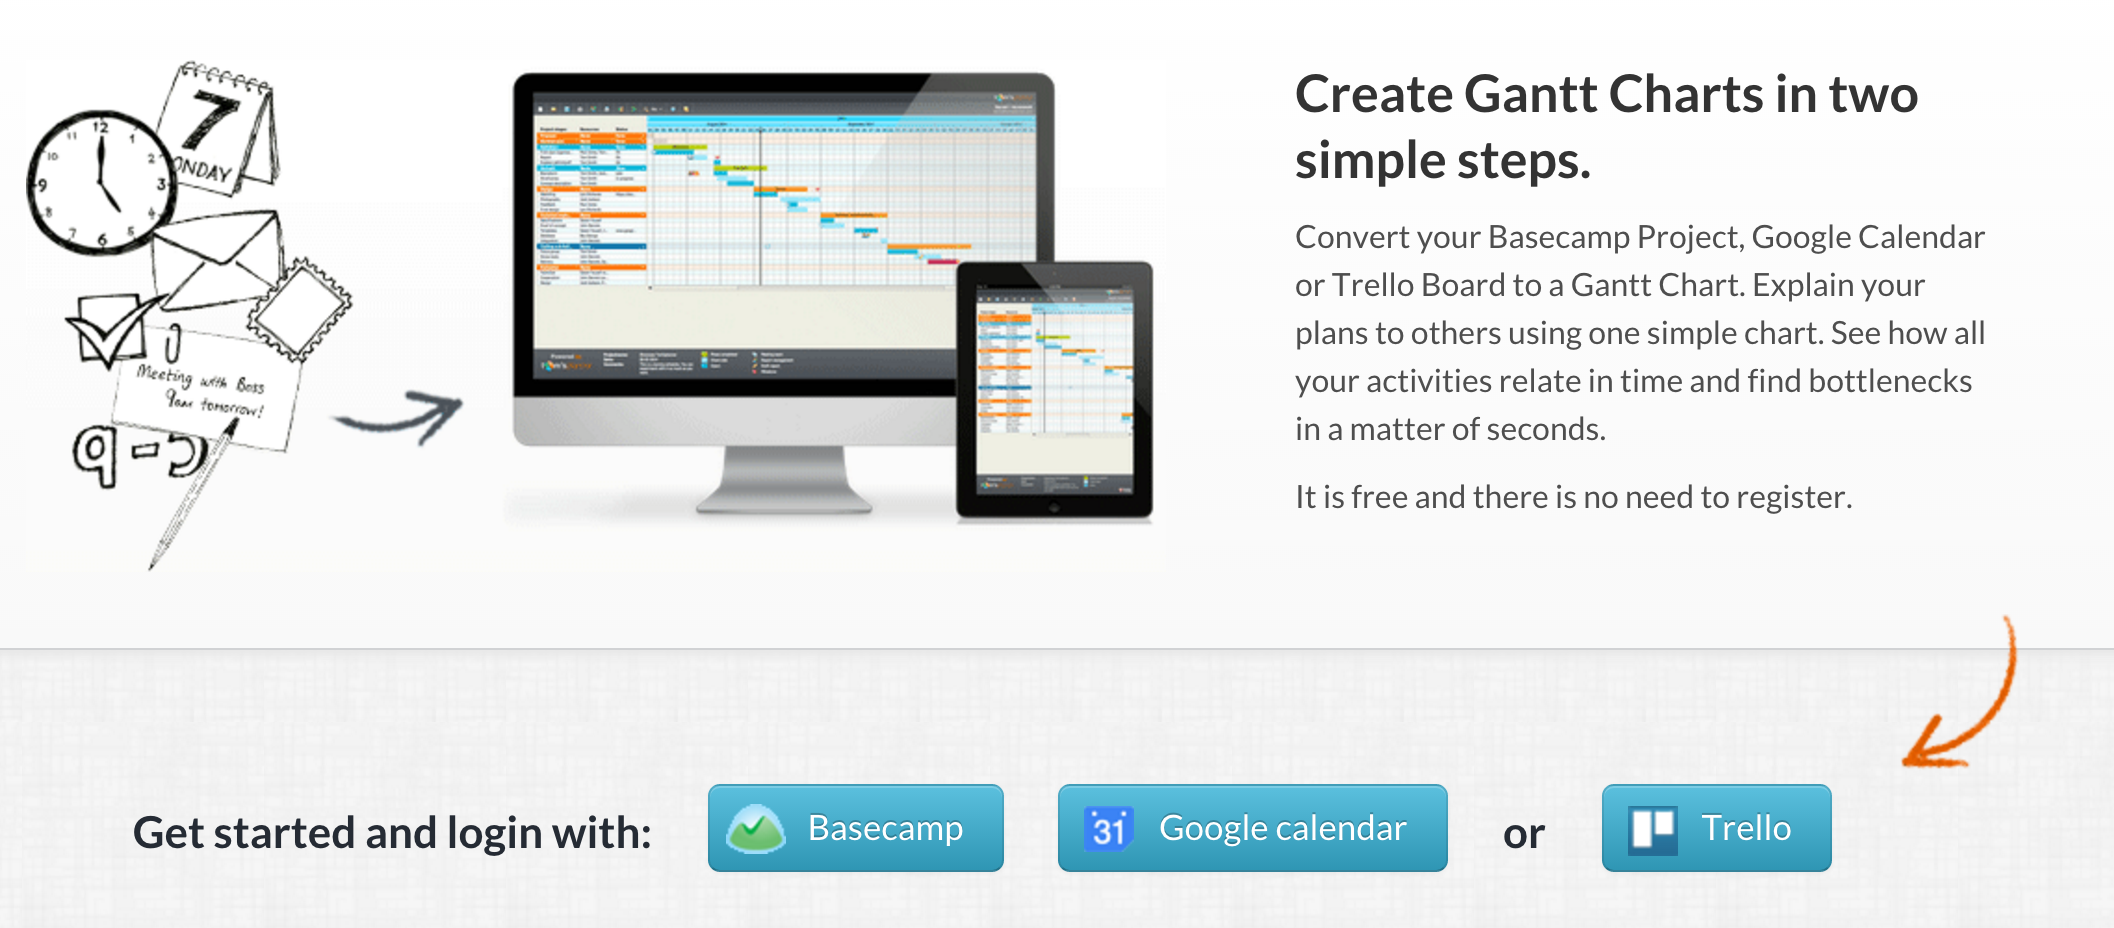 Create gantt charts in two simple steps convert your basecamp create gantt charts in two simple steps convert your basecamp project google calendar or trello board to a gantt chart explain your plans to others using nvjuhfo Image collections